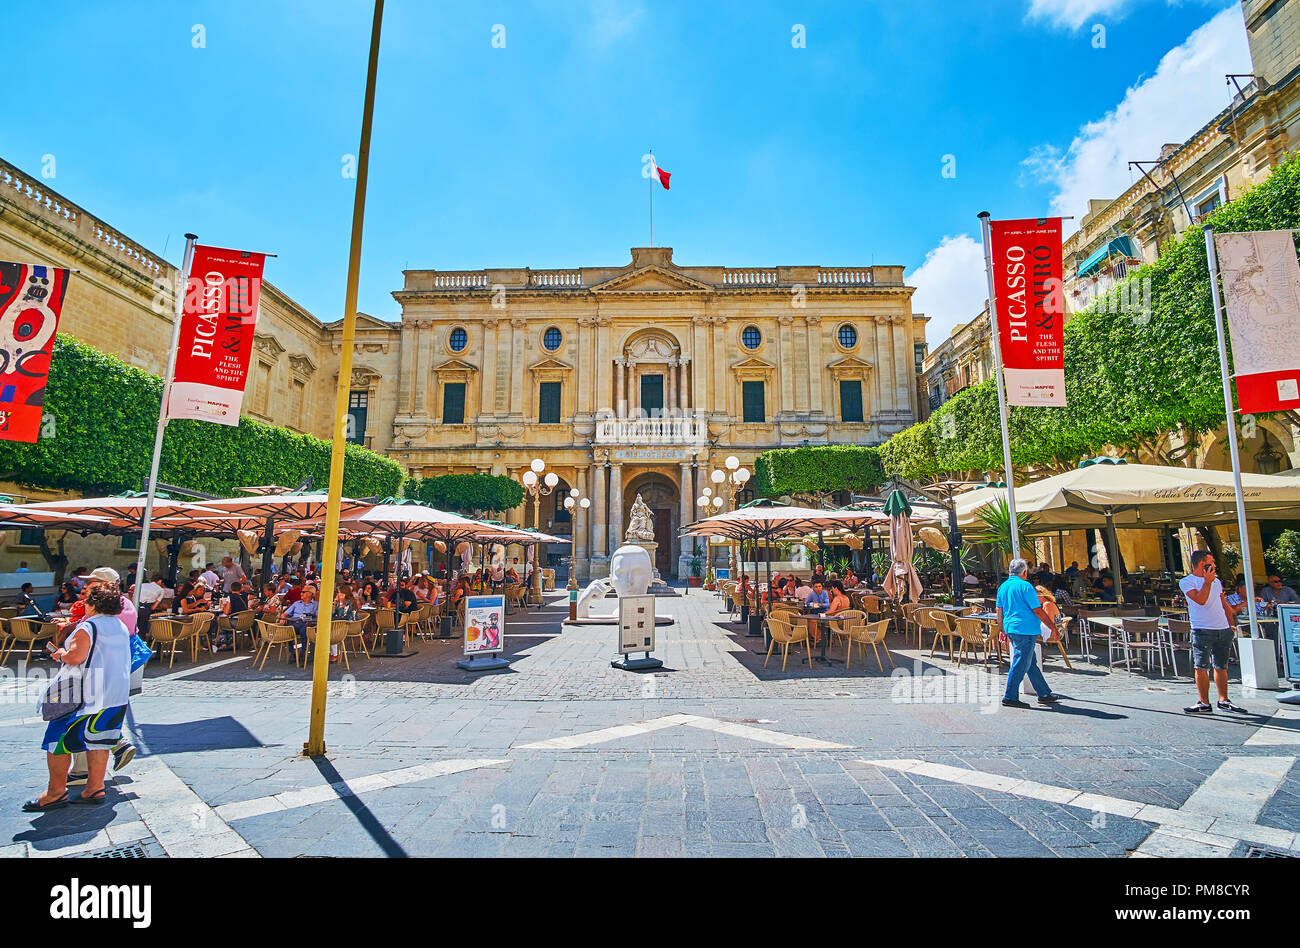 VALLETTA, MALTA - JUNE 17, 2018: The scenic outdoor cafes on Republic Square with a view on National Library of Malta on background, on June 17 in Val - Stock Image